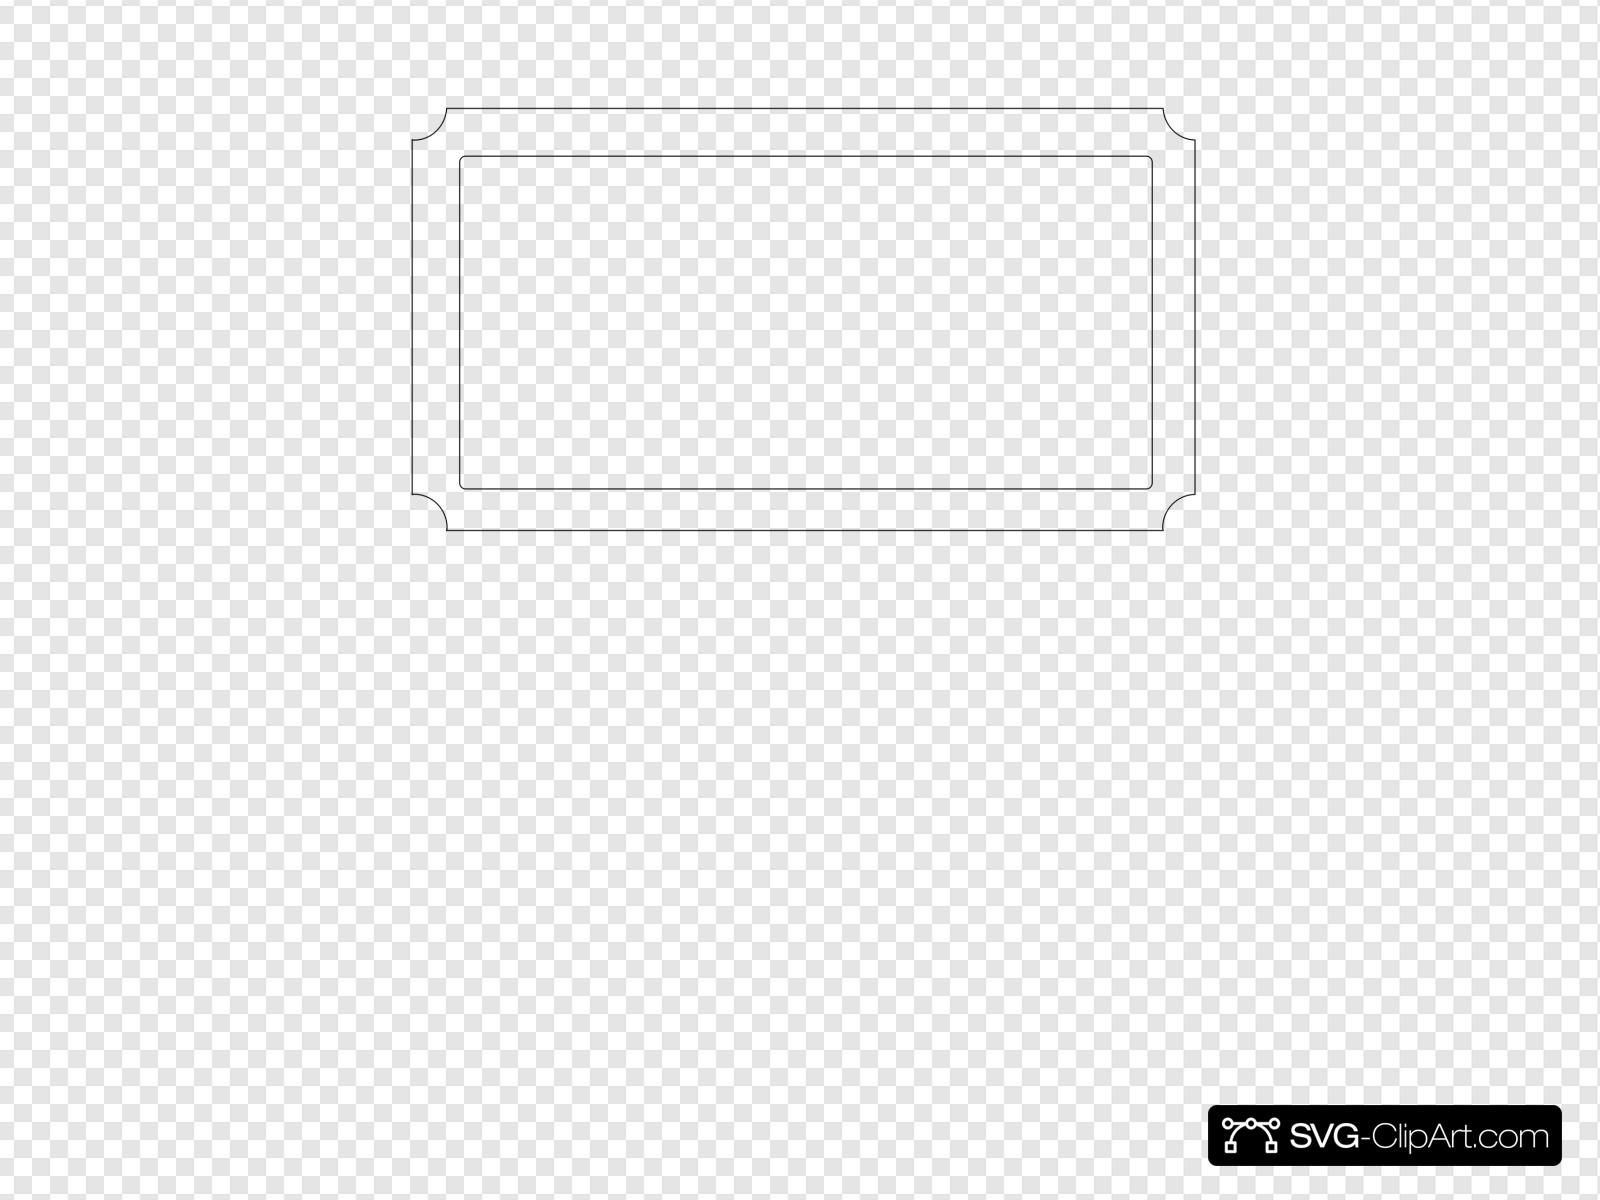 Blank Ticket Clip art, Icon and SVG.